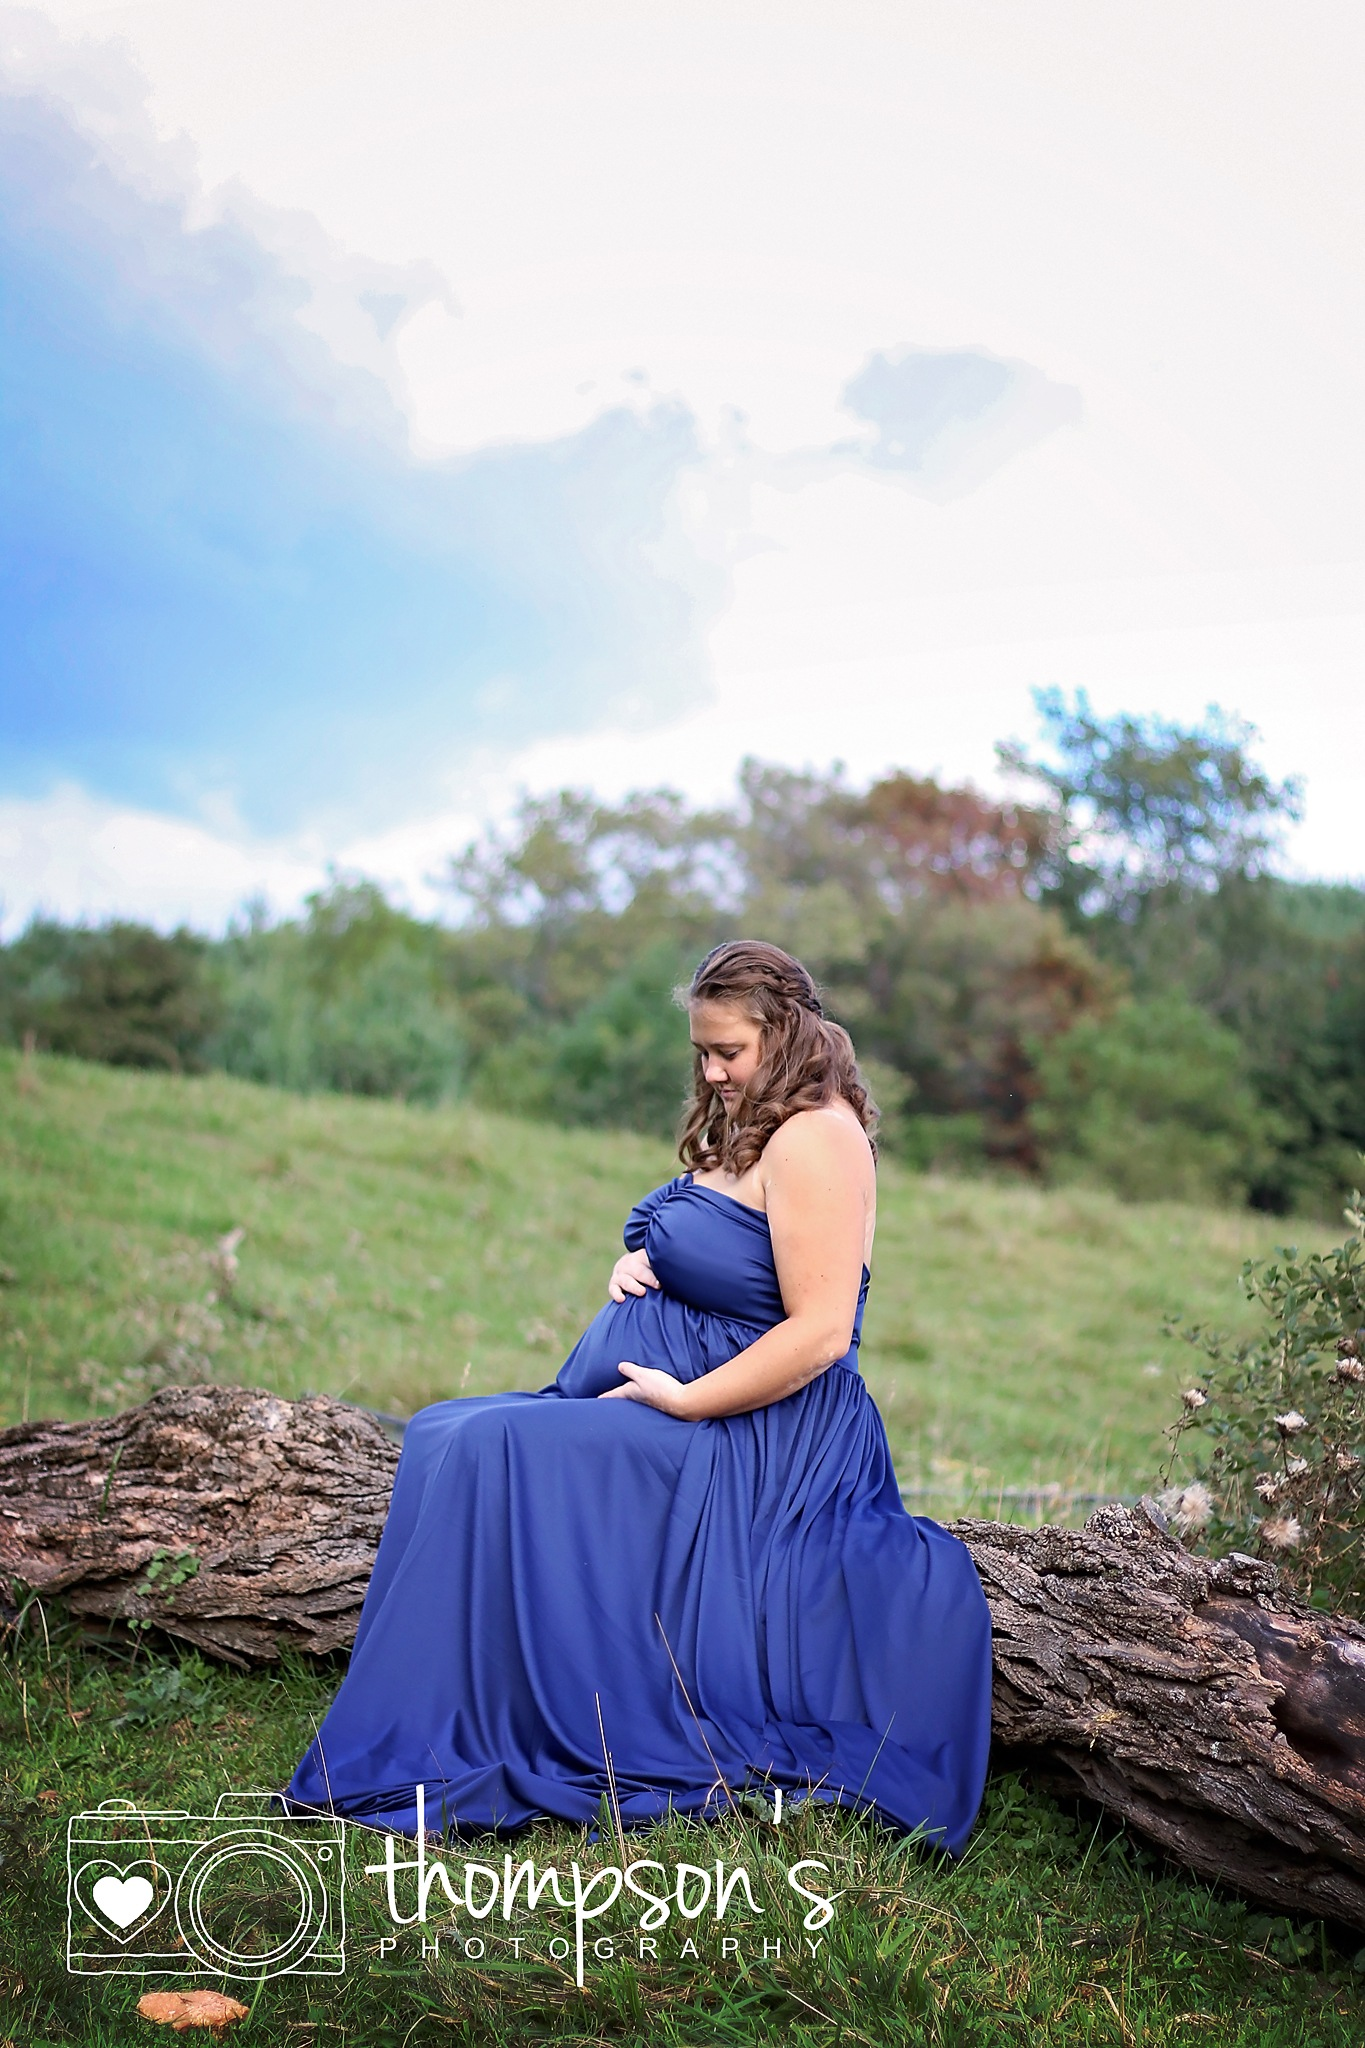 Miss C's maternity session by AngieThompson